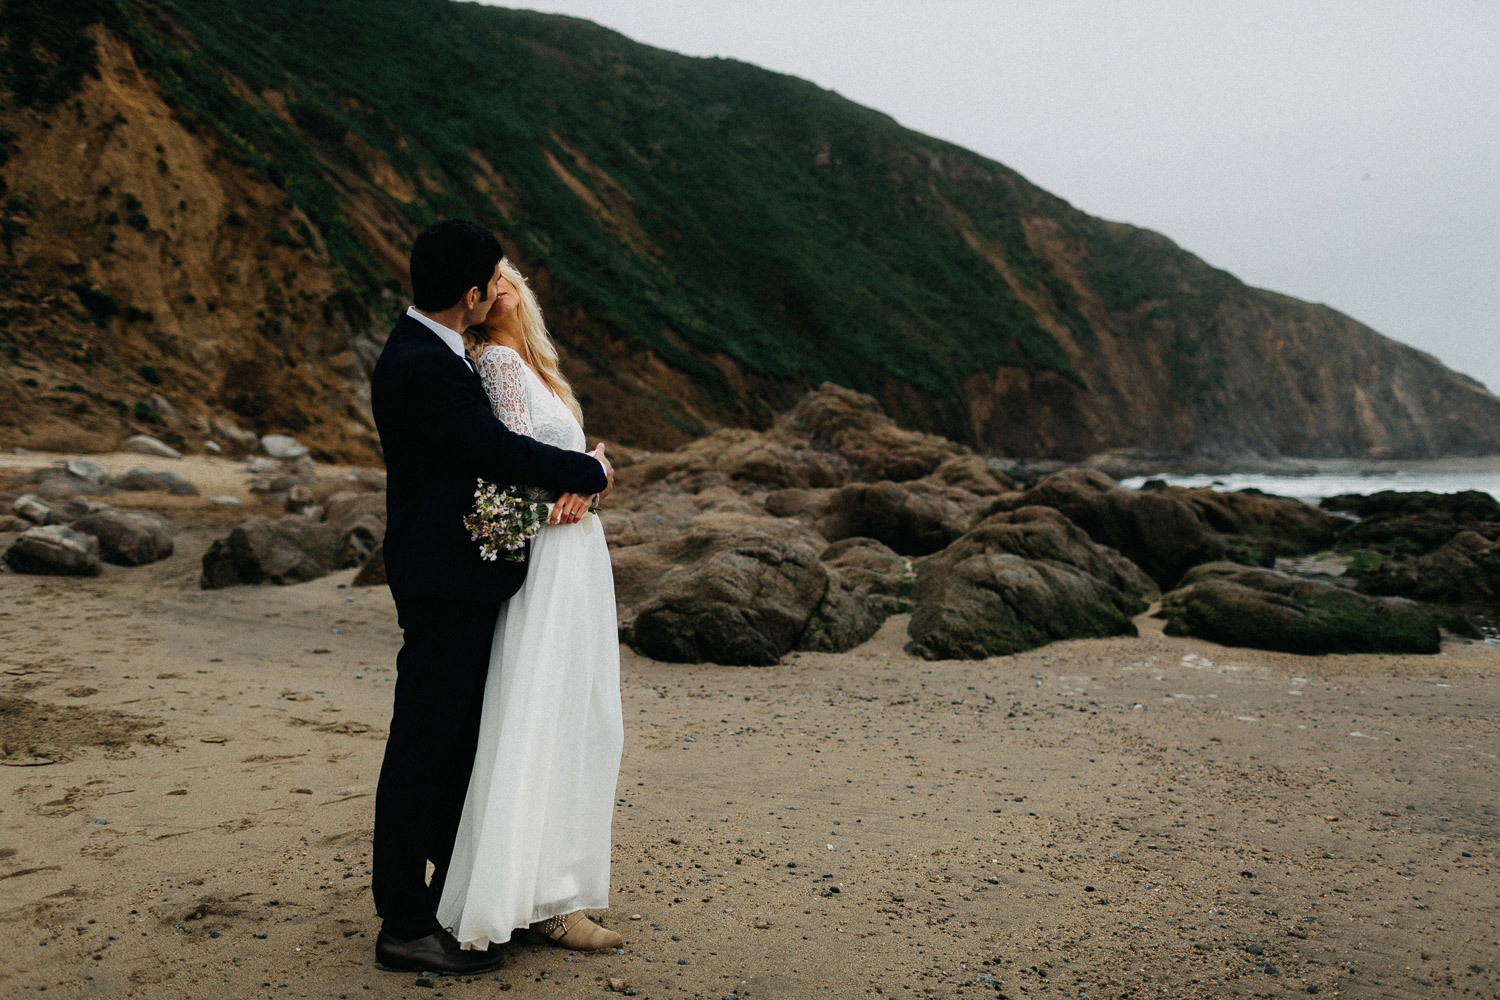 Image of groom kisses bride on beach